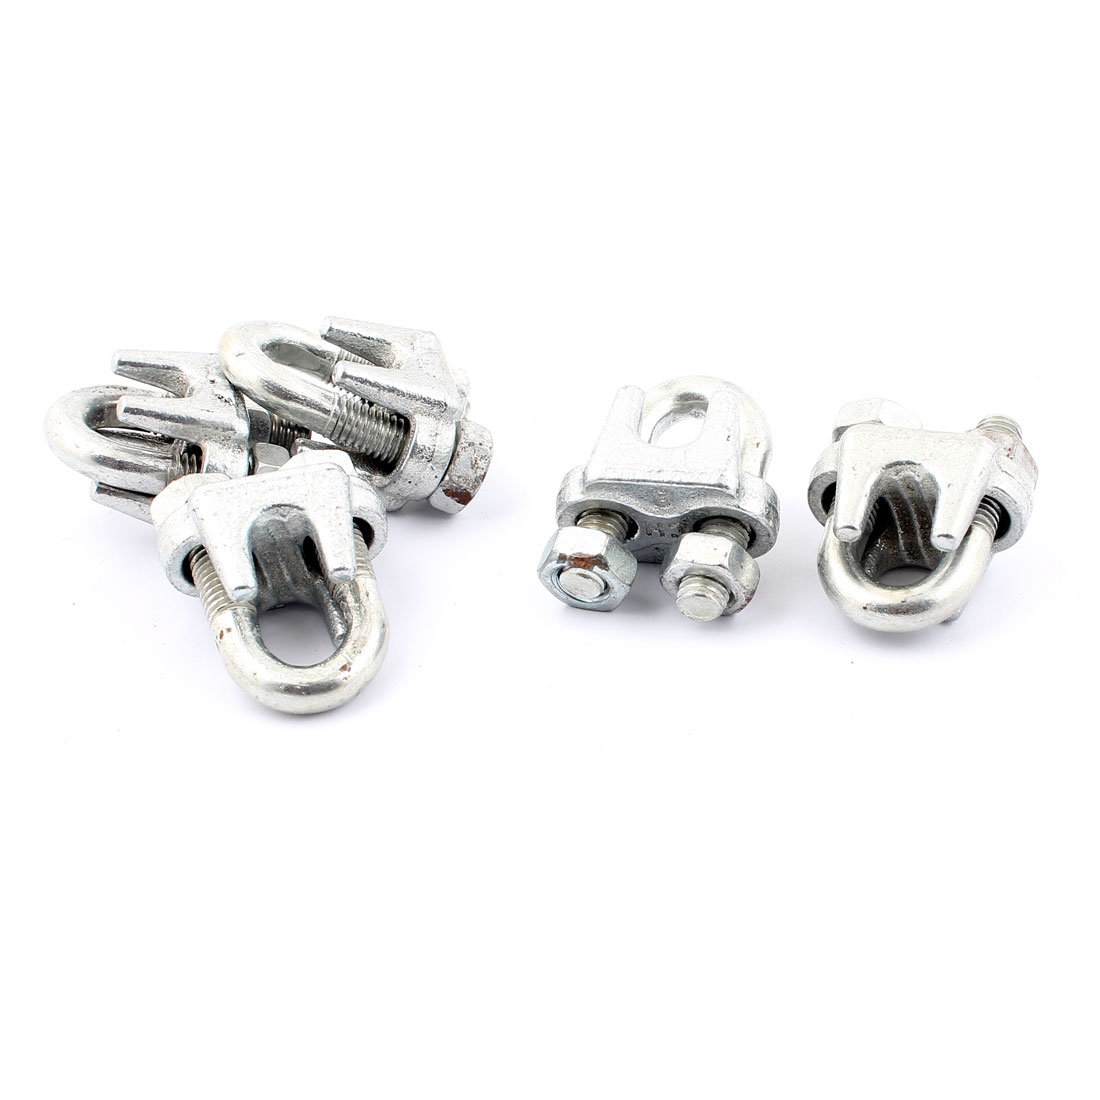 U Shape Metal Saddle Clamp Wire Rope Cable Clips 5pcs